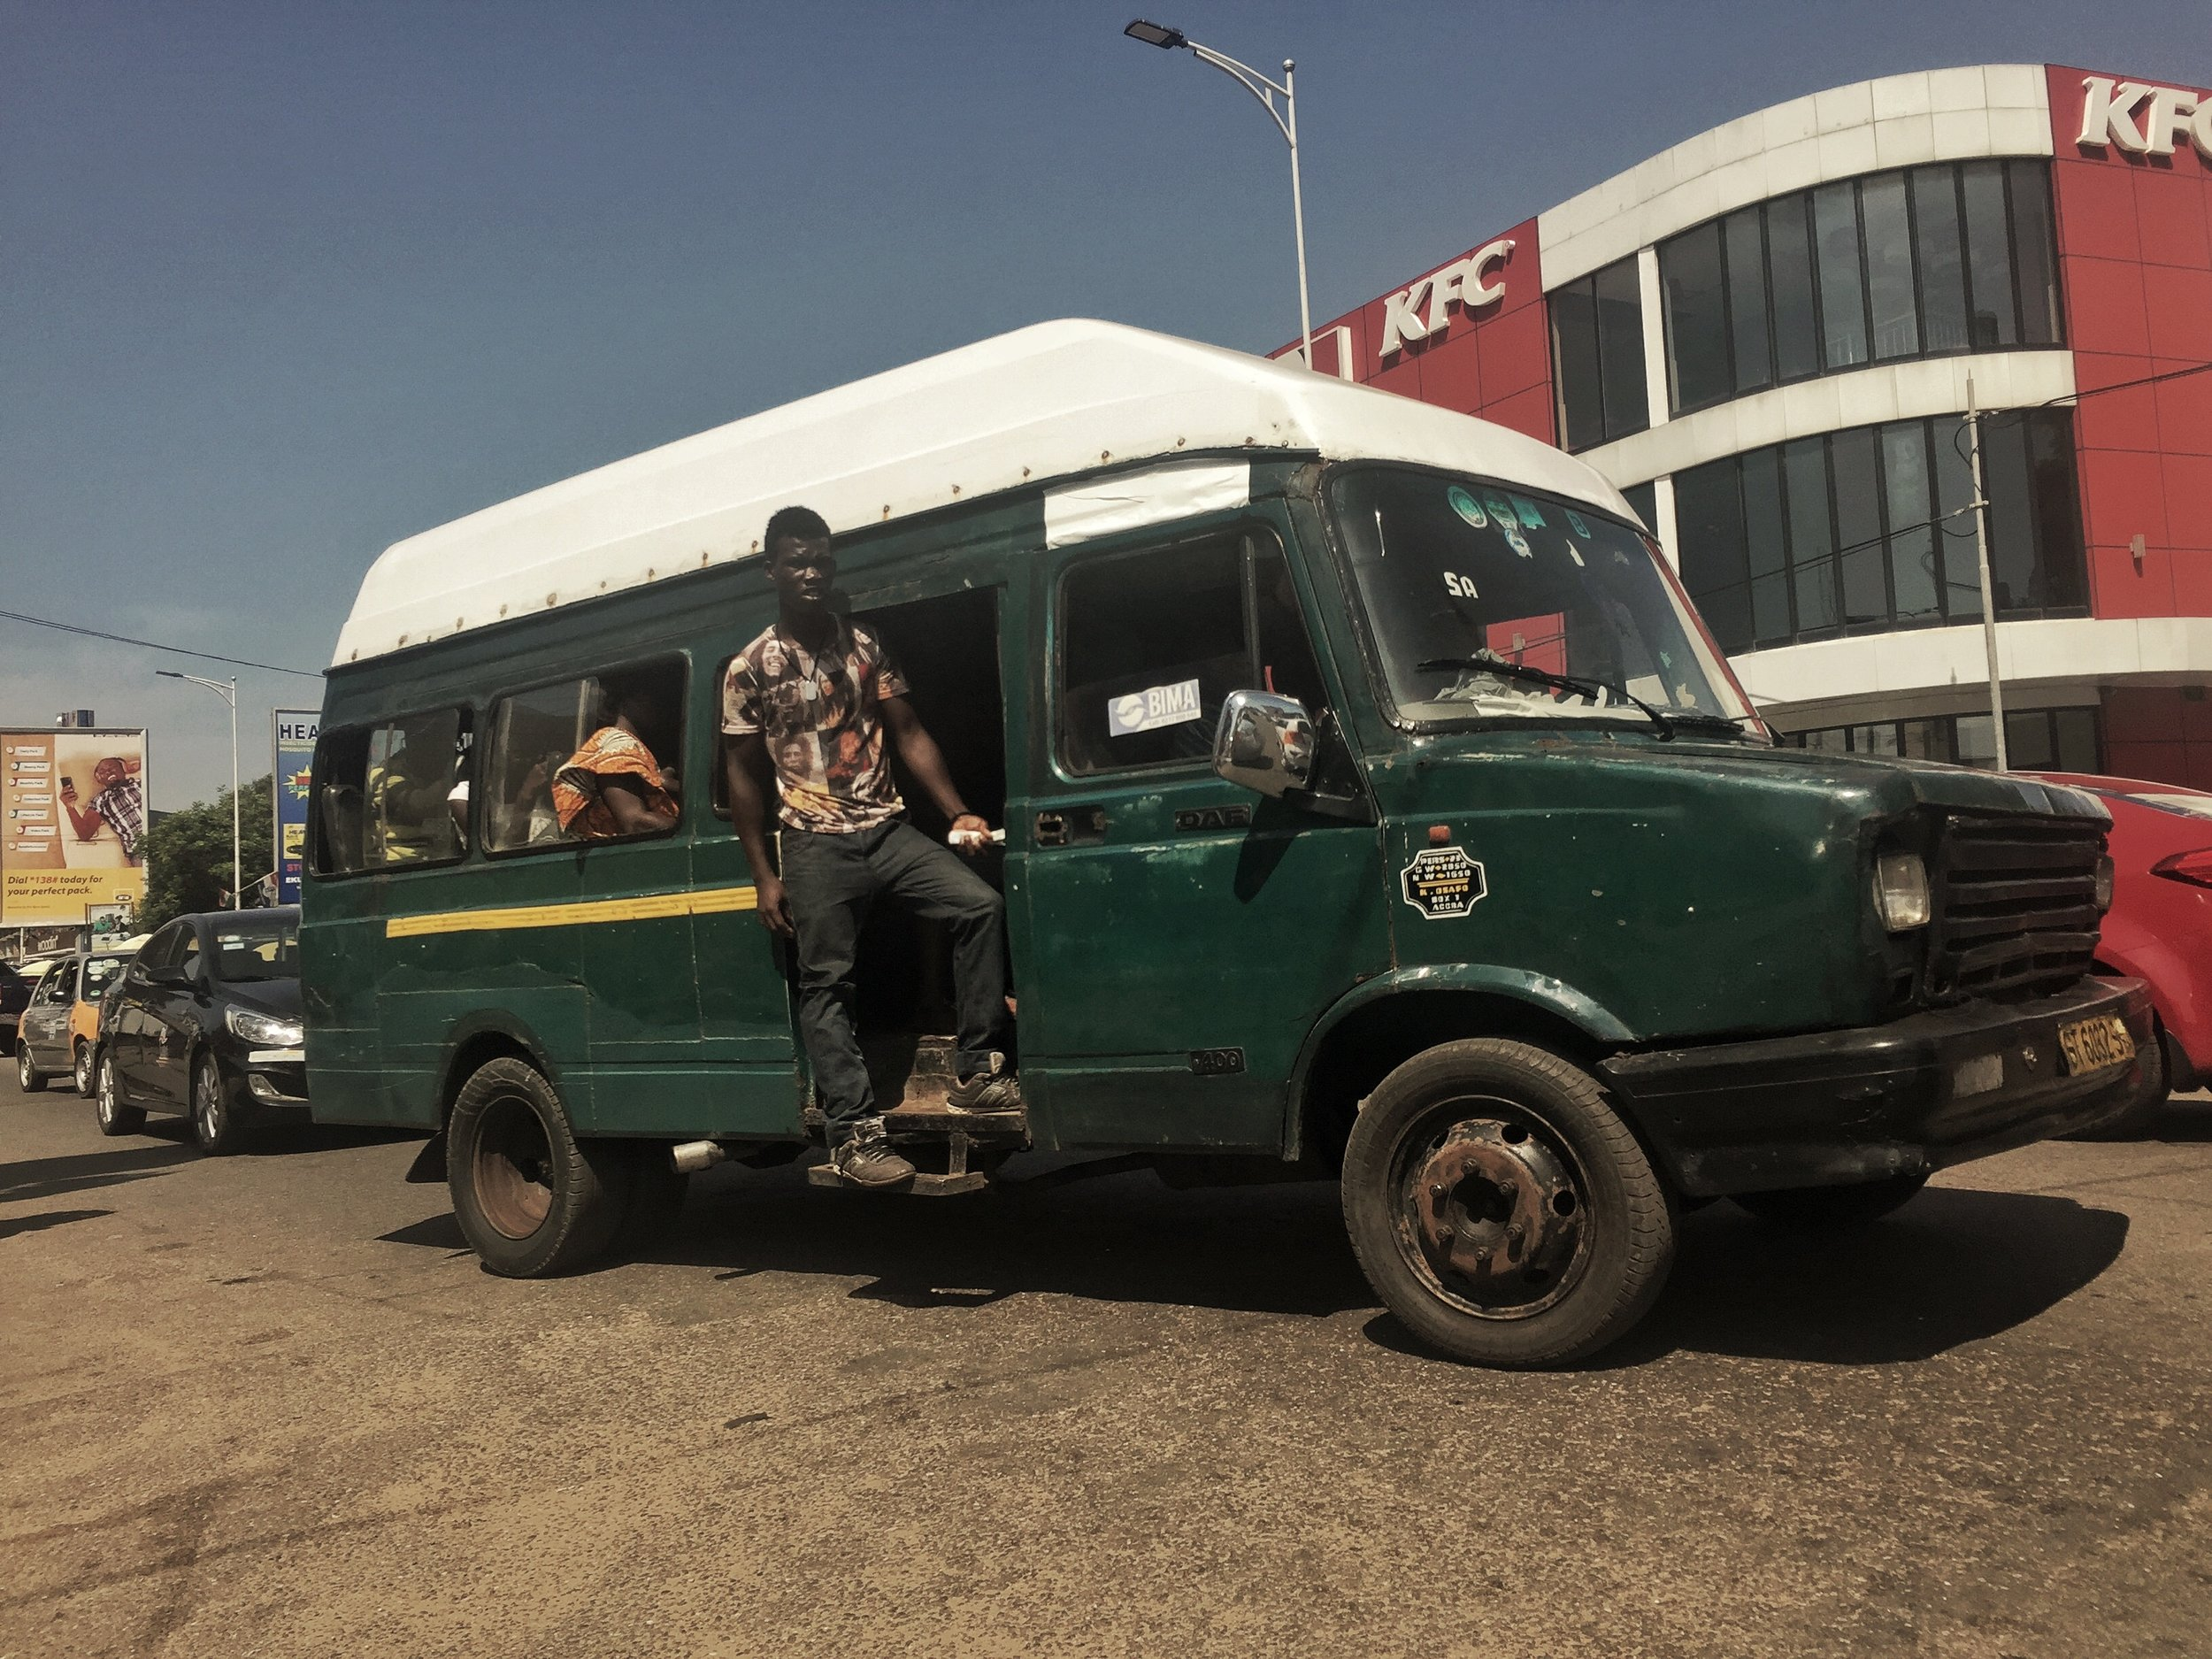 The mate of this trotro calls out destinations to passengers and collects fares.